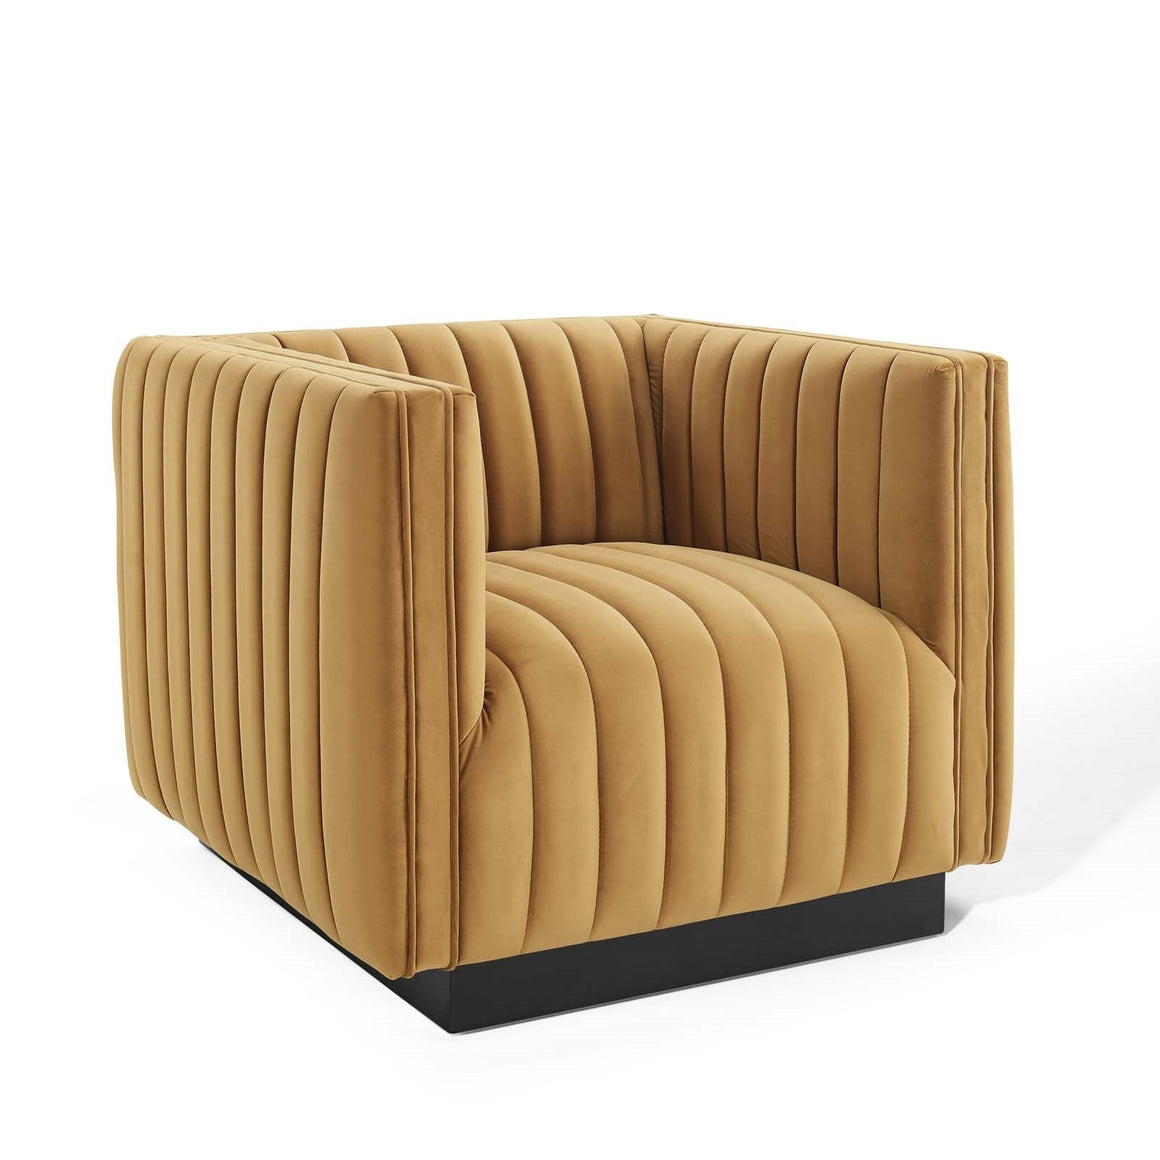 Conjure Channel Tufted Velvet Accent Armchair - taylor ray decor